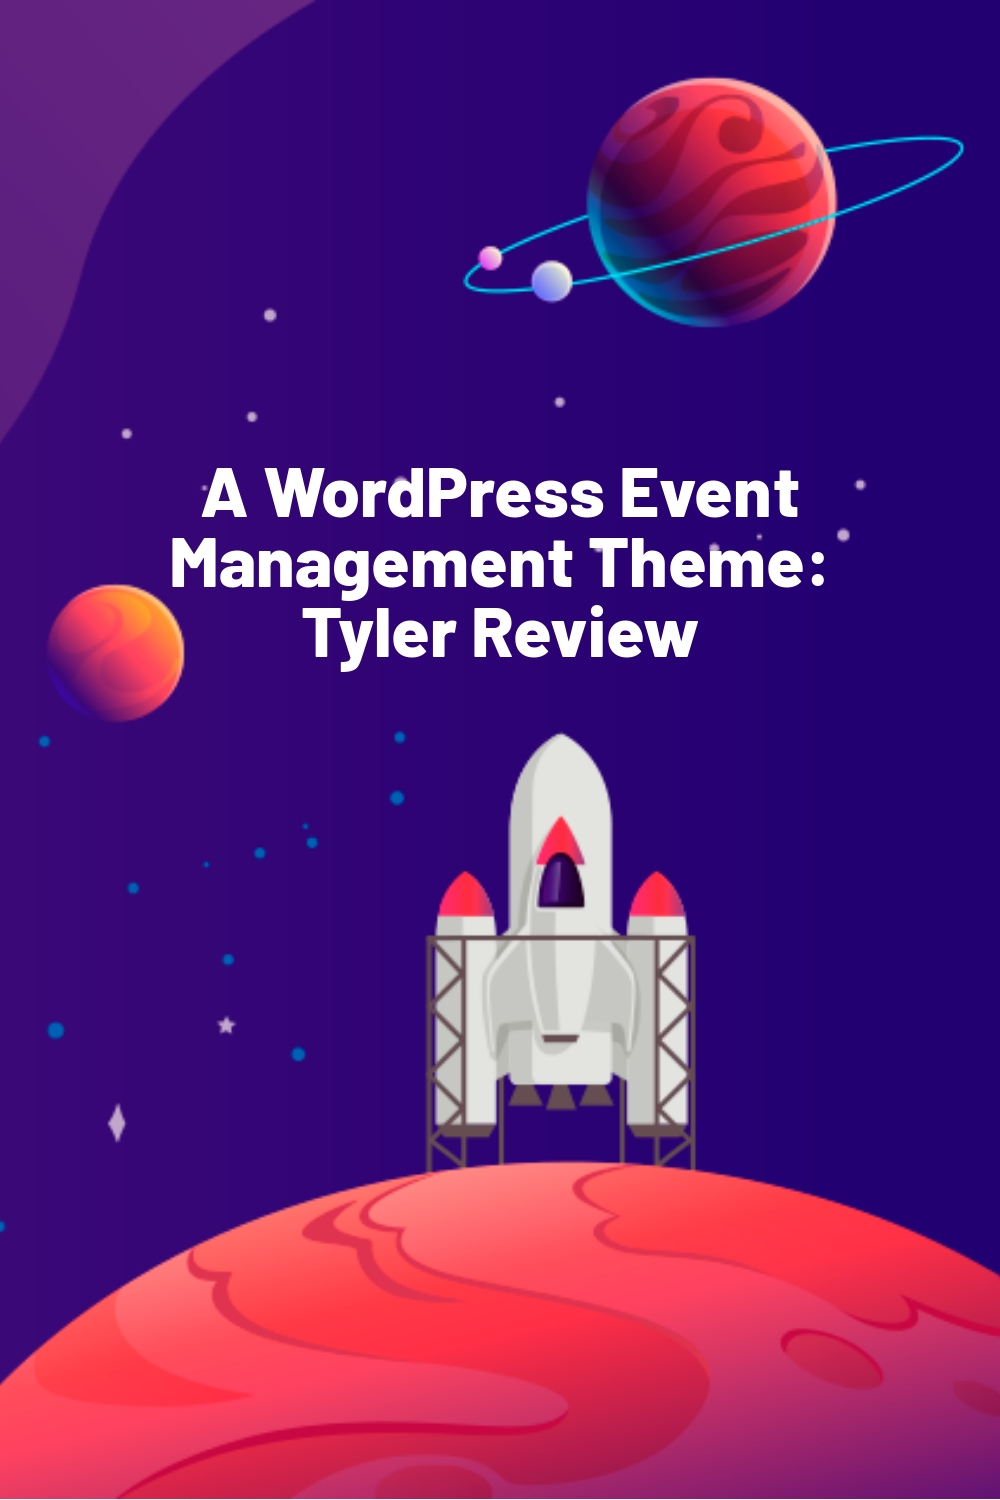 A WordPress Event Management Theme: Tyler Review